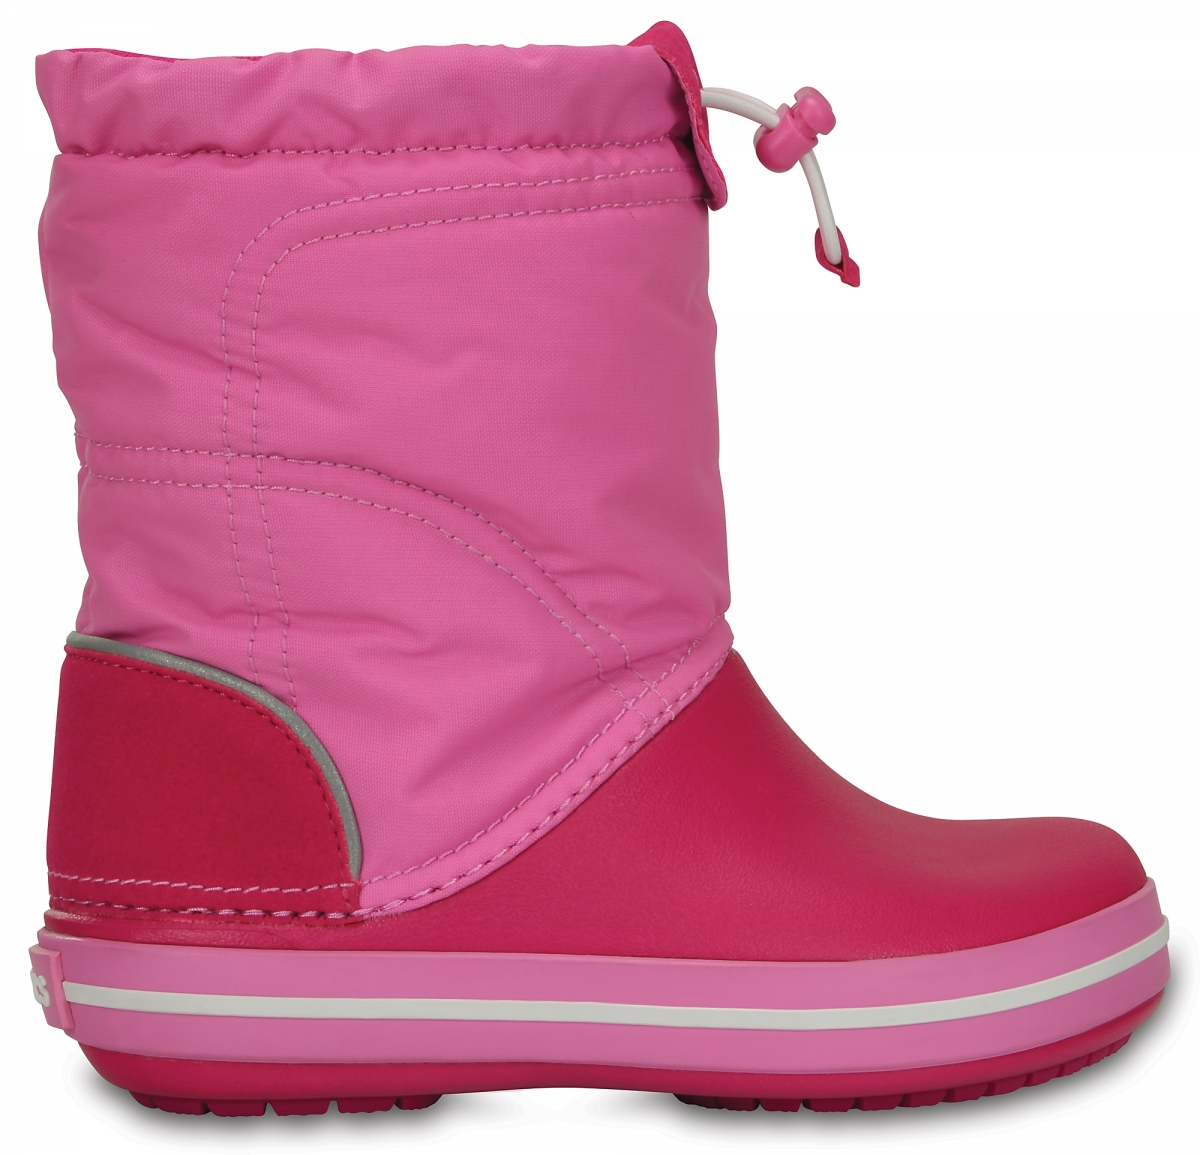 Crocs Crocband LodgePoint Boot Kids - Candy Pink/Party Pink, C9 (25-26)